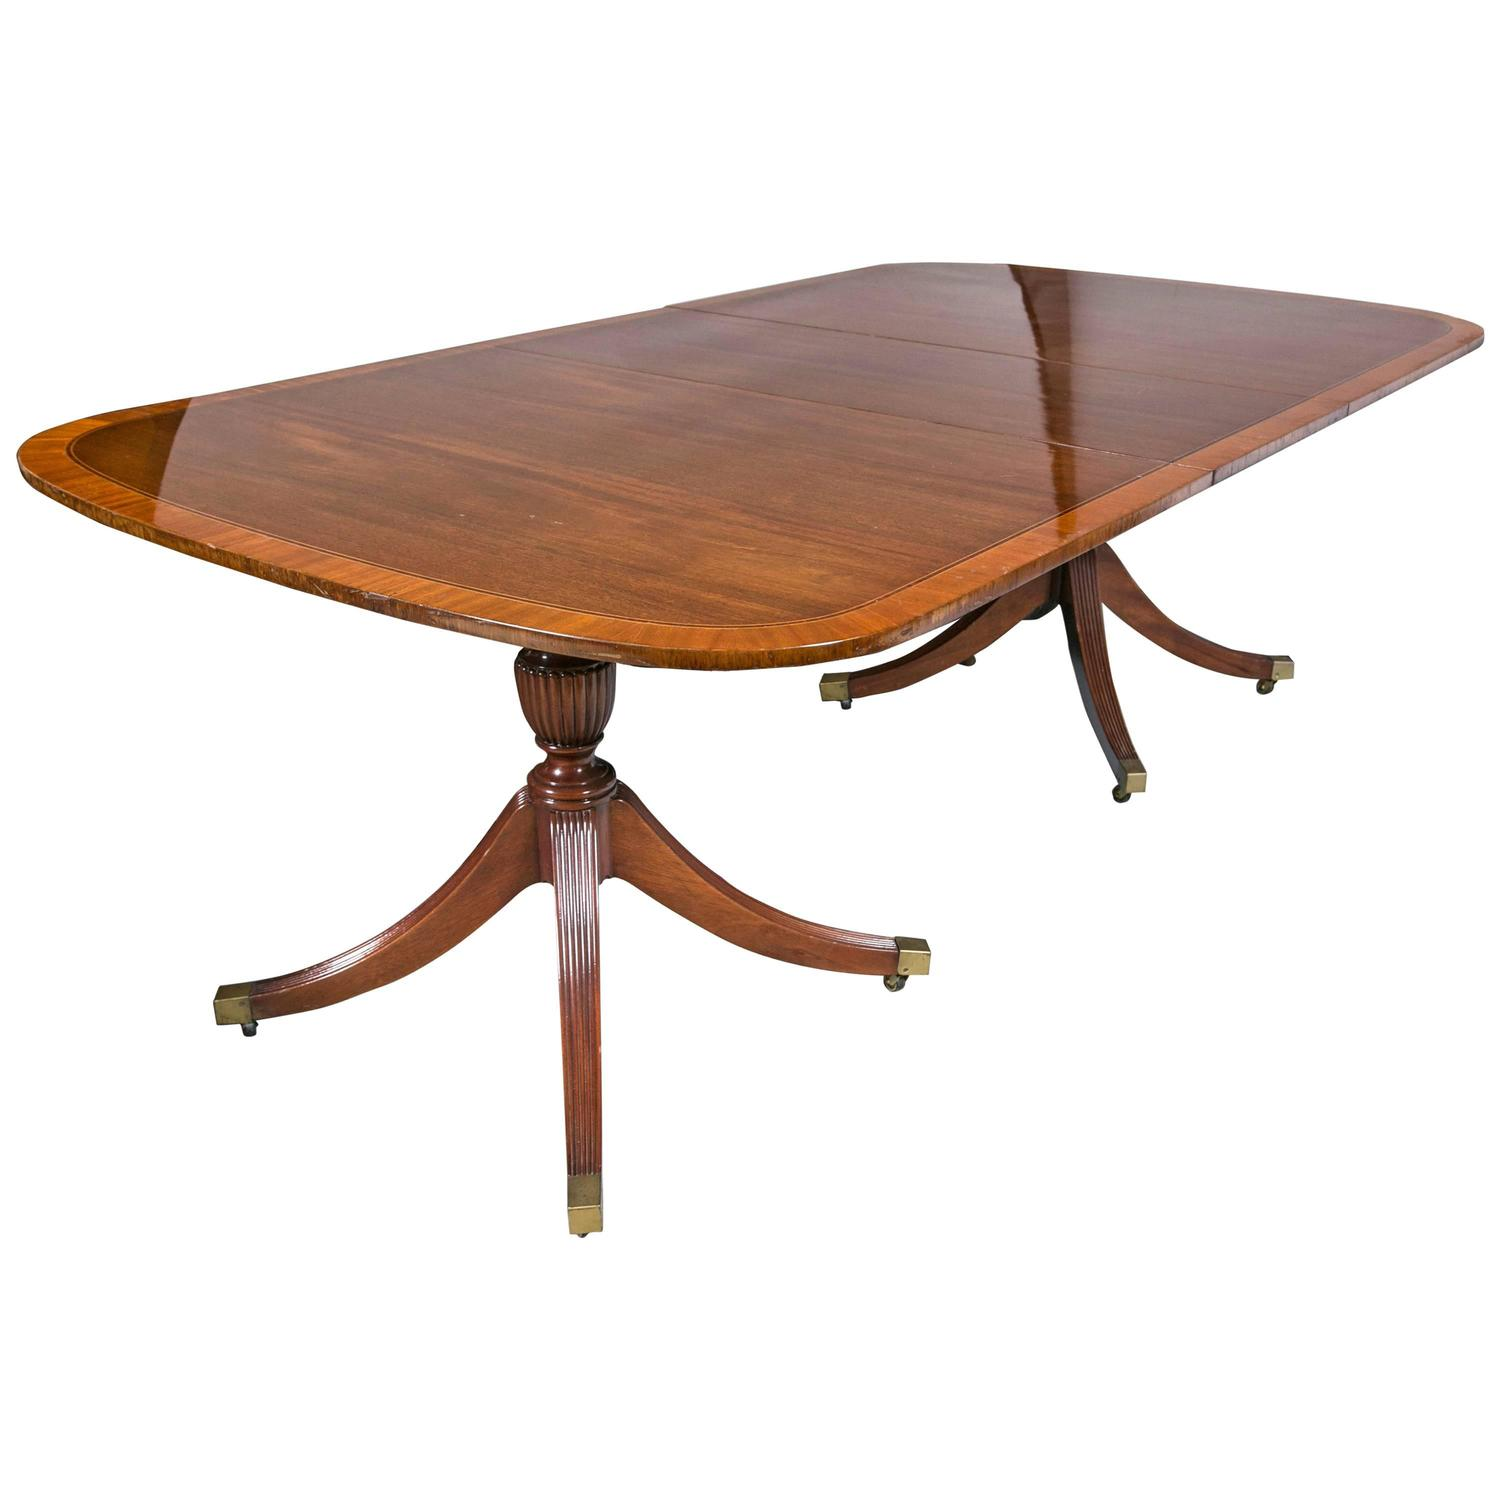 Georgian style mahogany banded dining table by baker with for Dining room tables with leaves